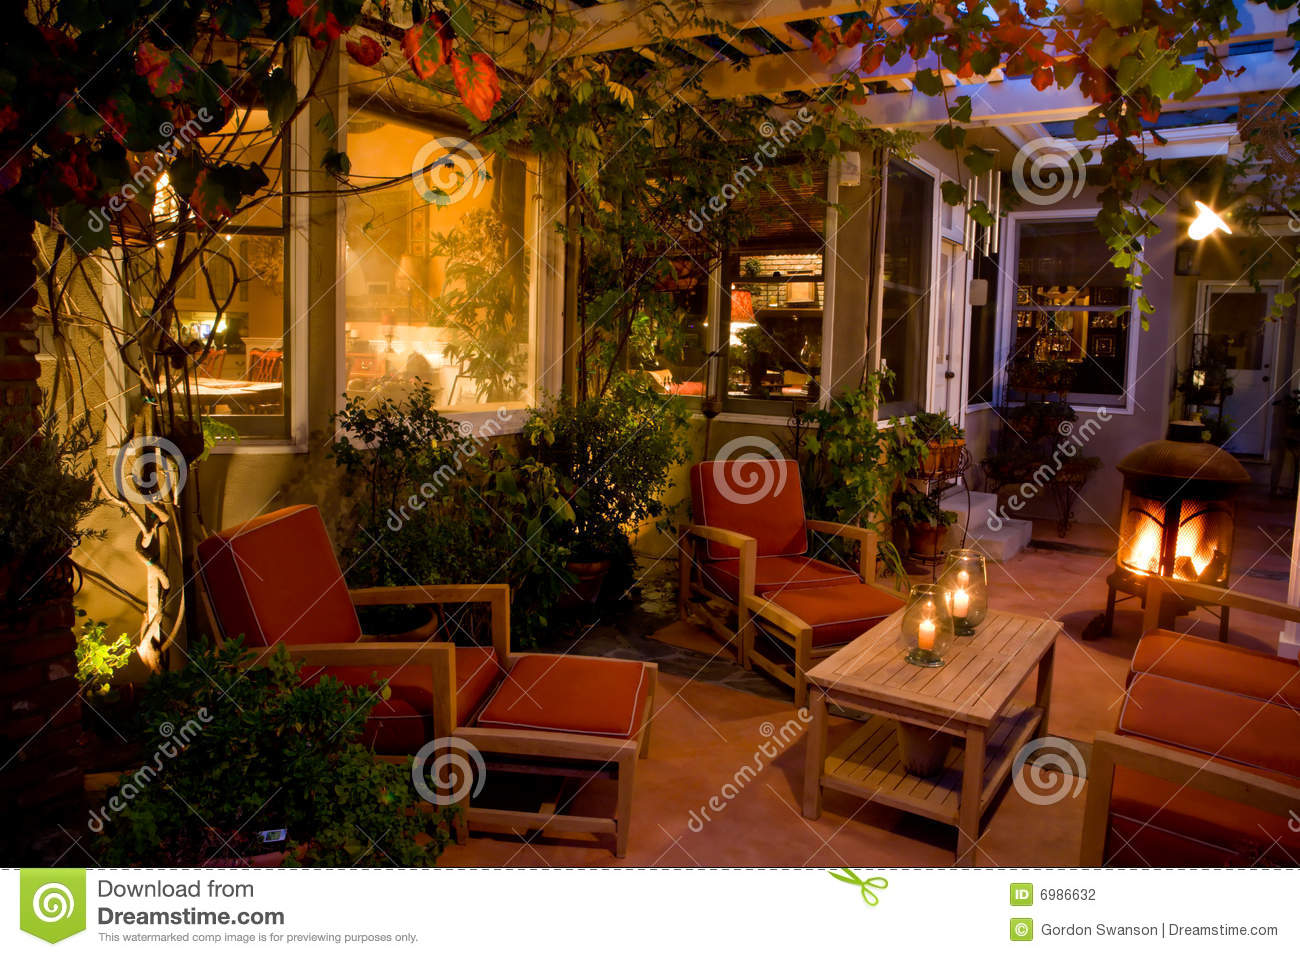 Elegant backyard patio stock photo. Image of nightfall ...